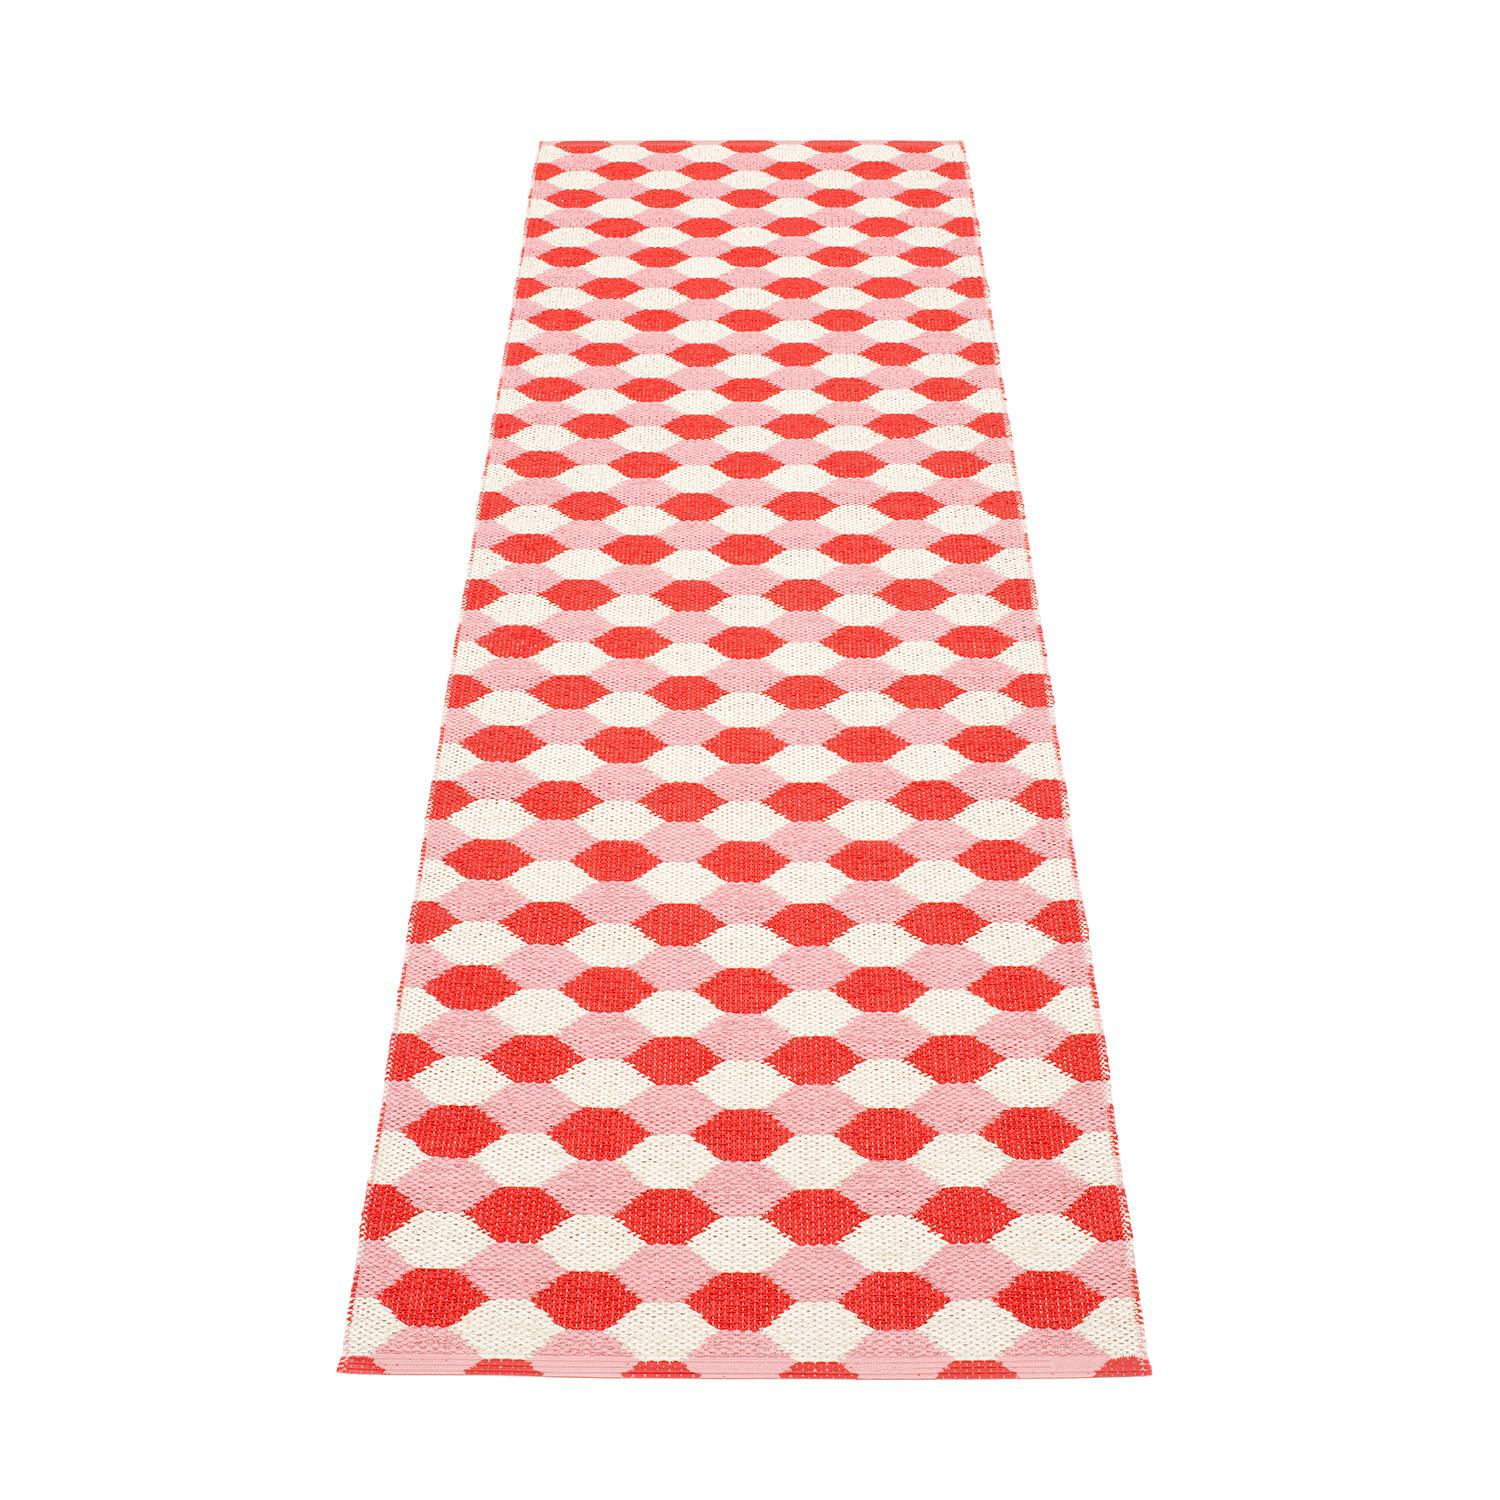 Pappelina Dana Matto 70x250cm, Coral Red/Piglet